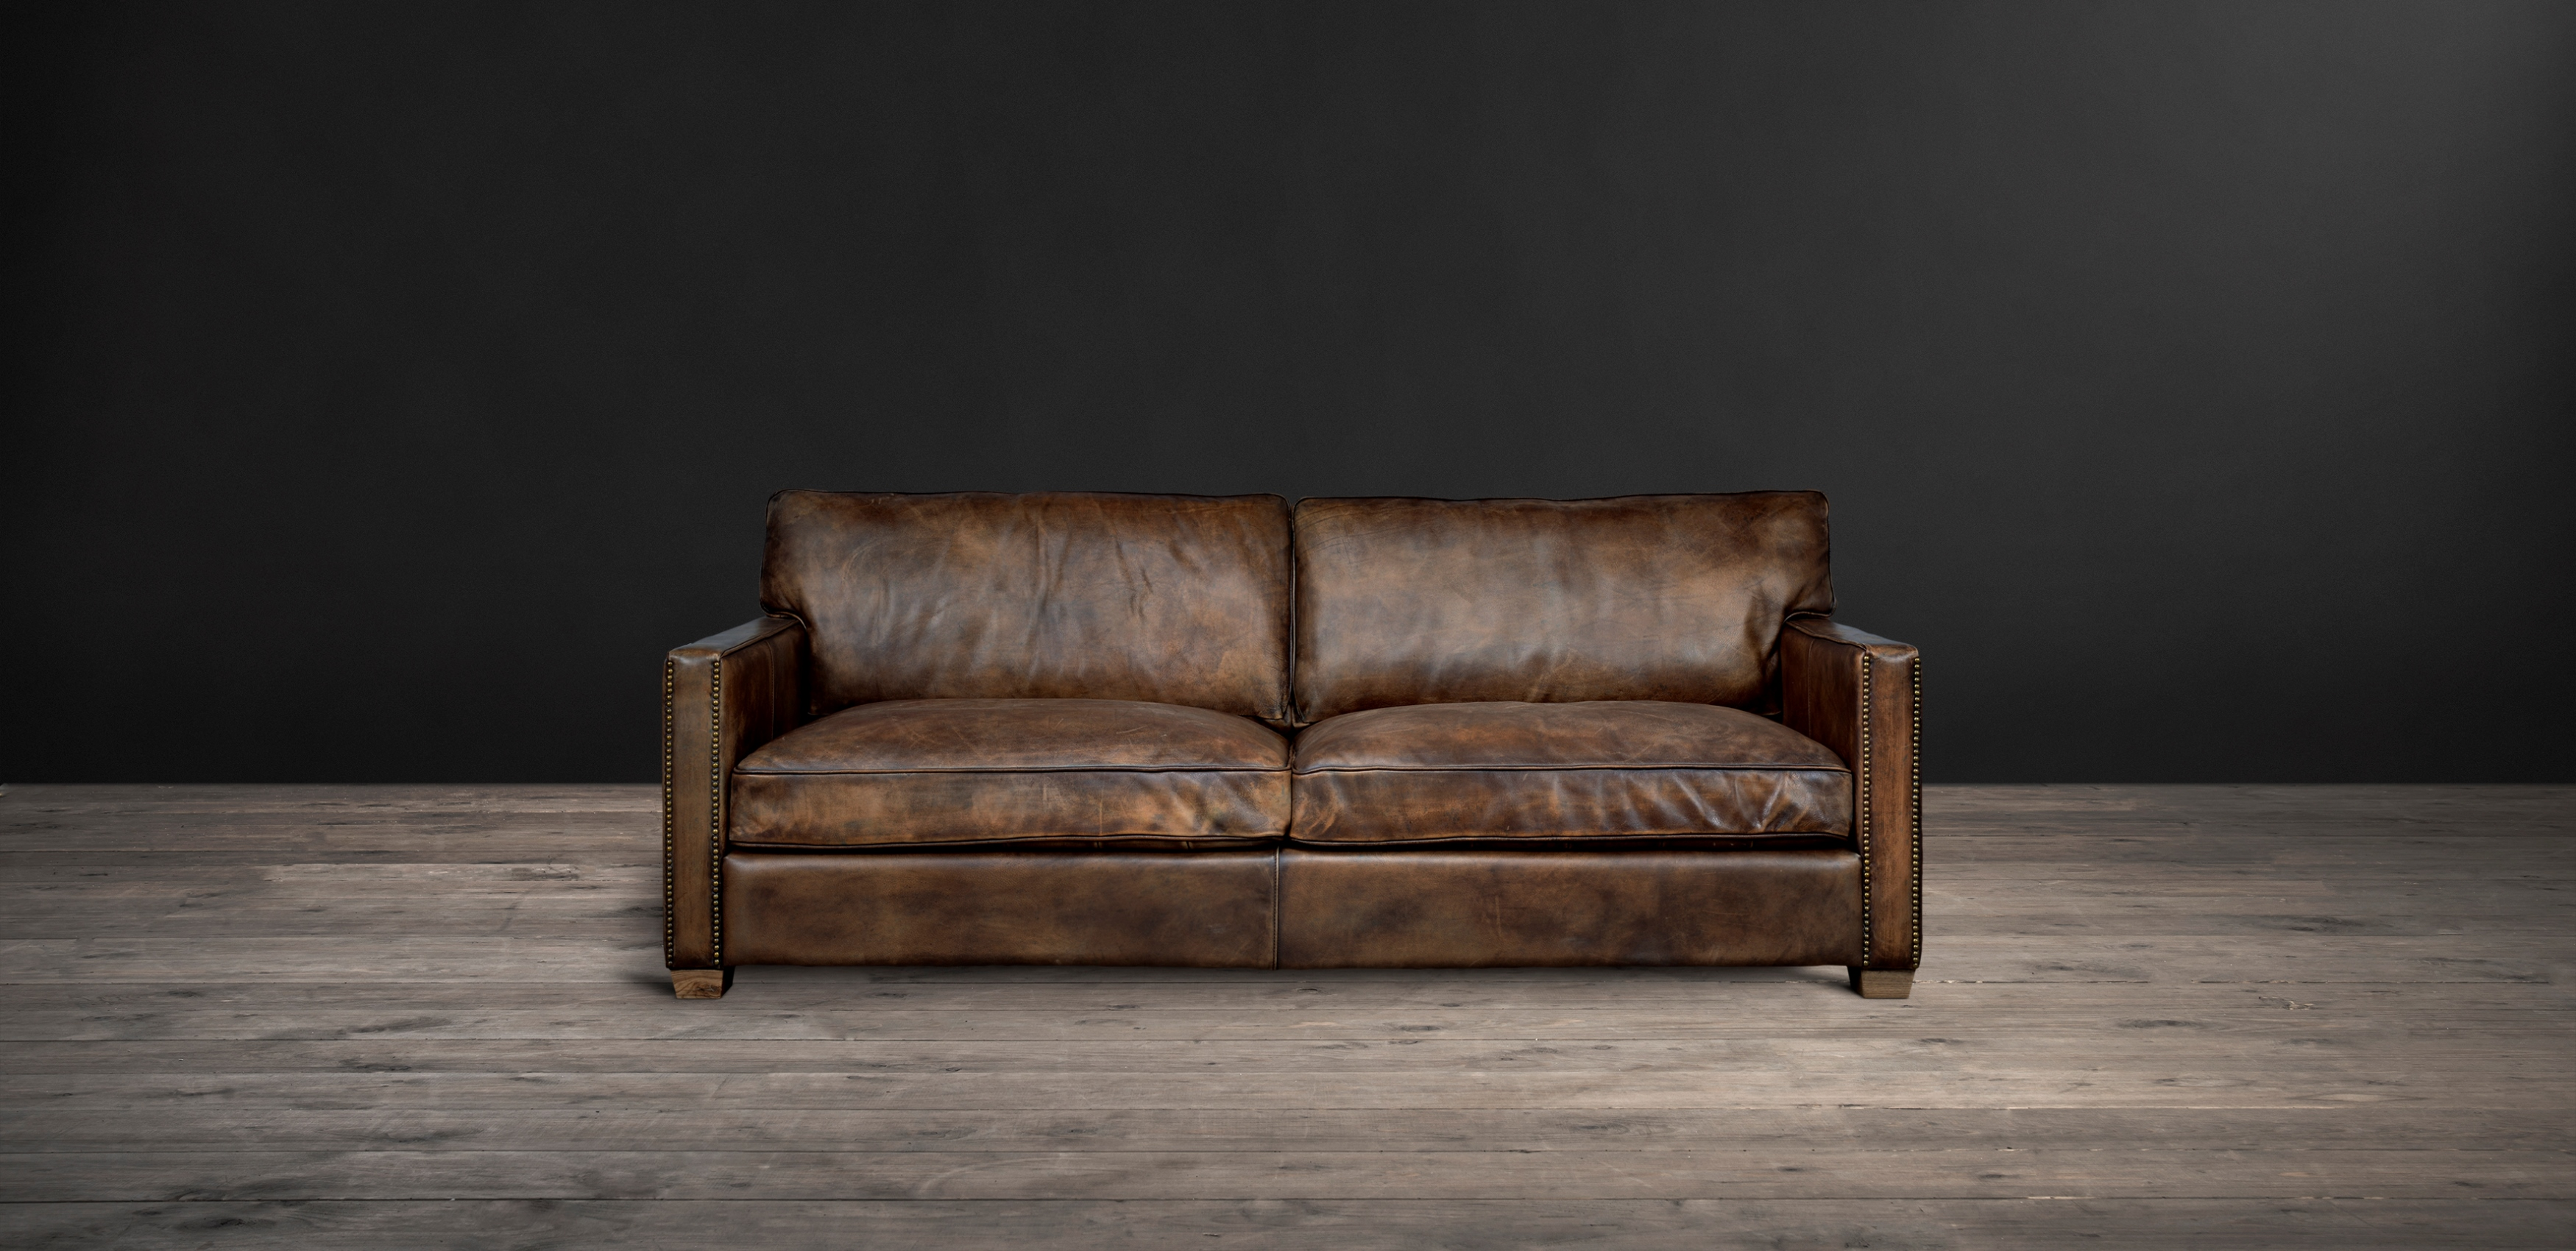 Exceptional Timothy Oulton Classic Leather Sofa   Viscount William Leather Sofa From  Front